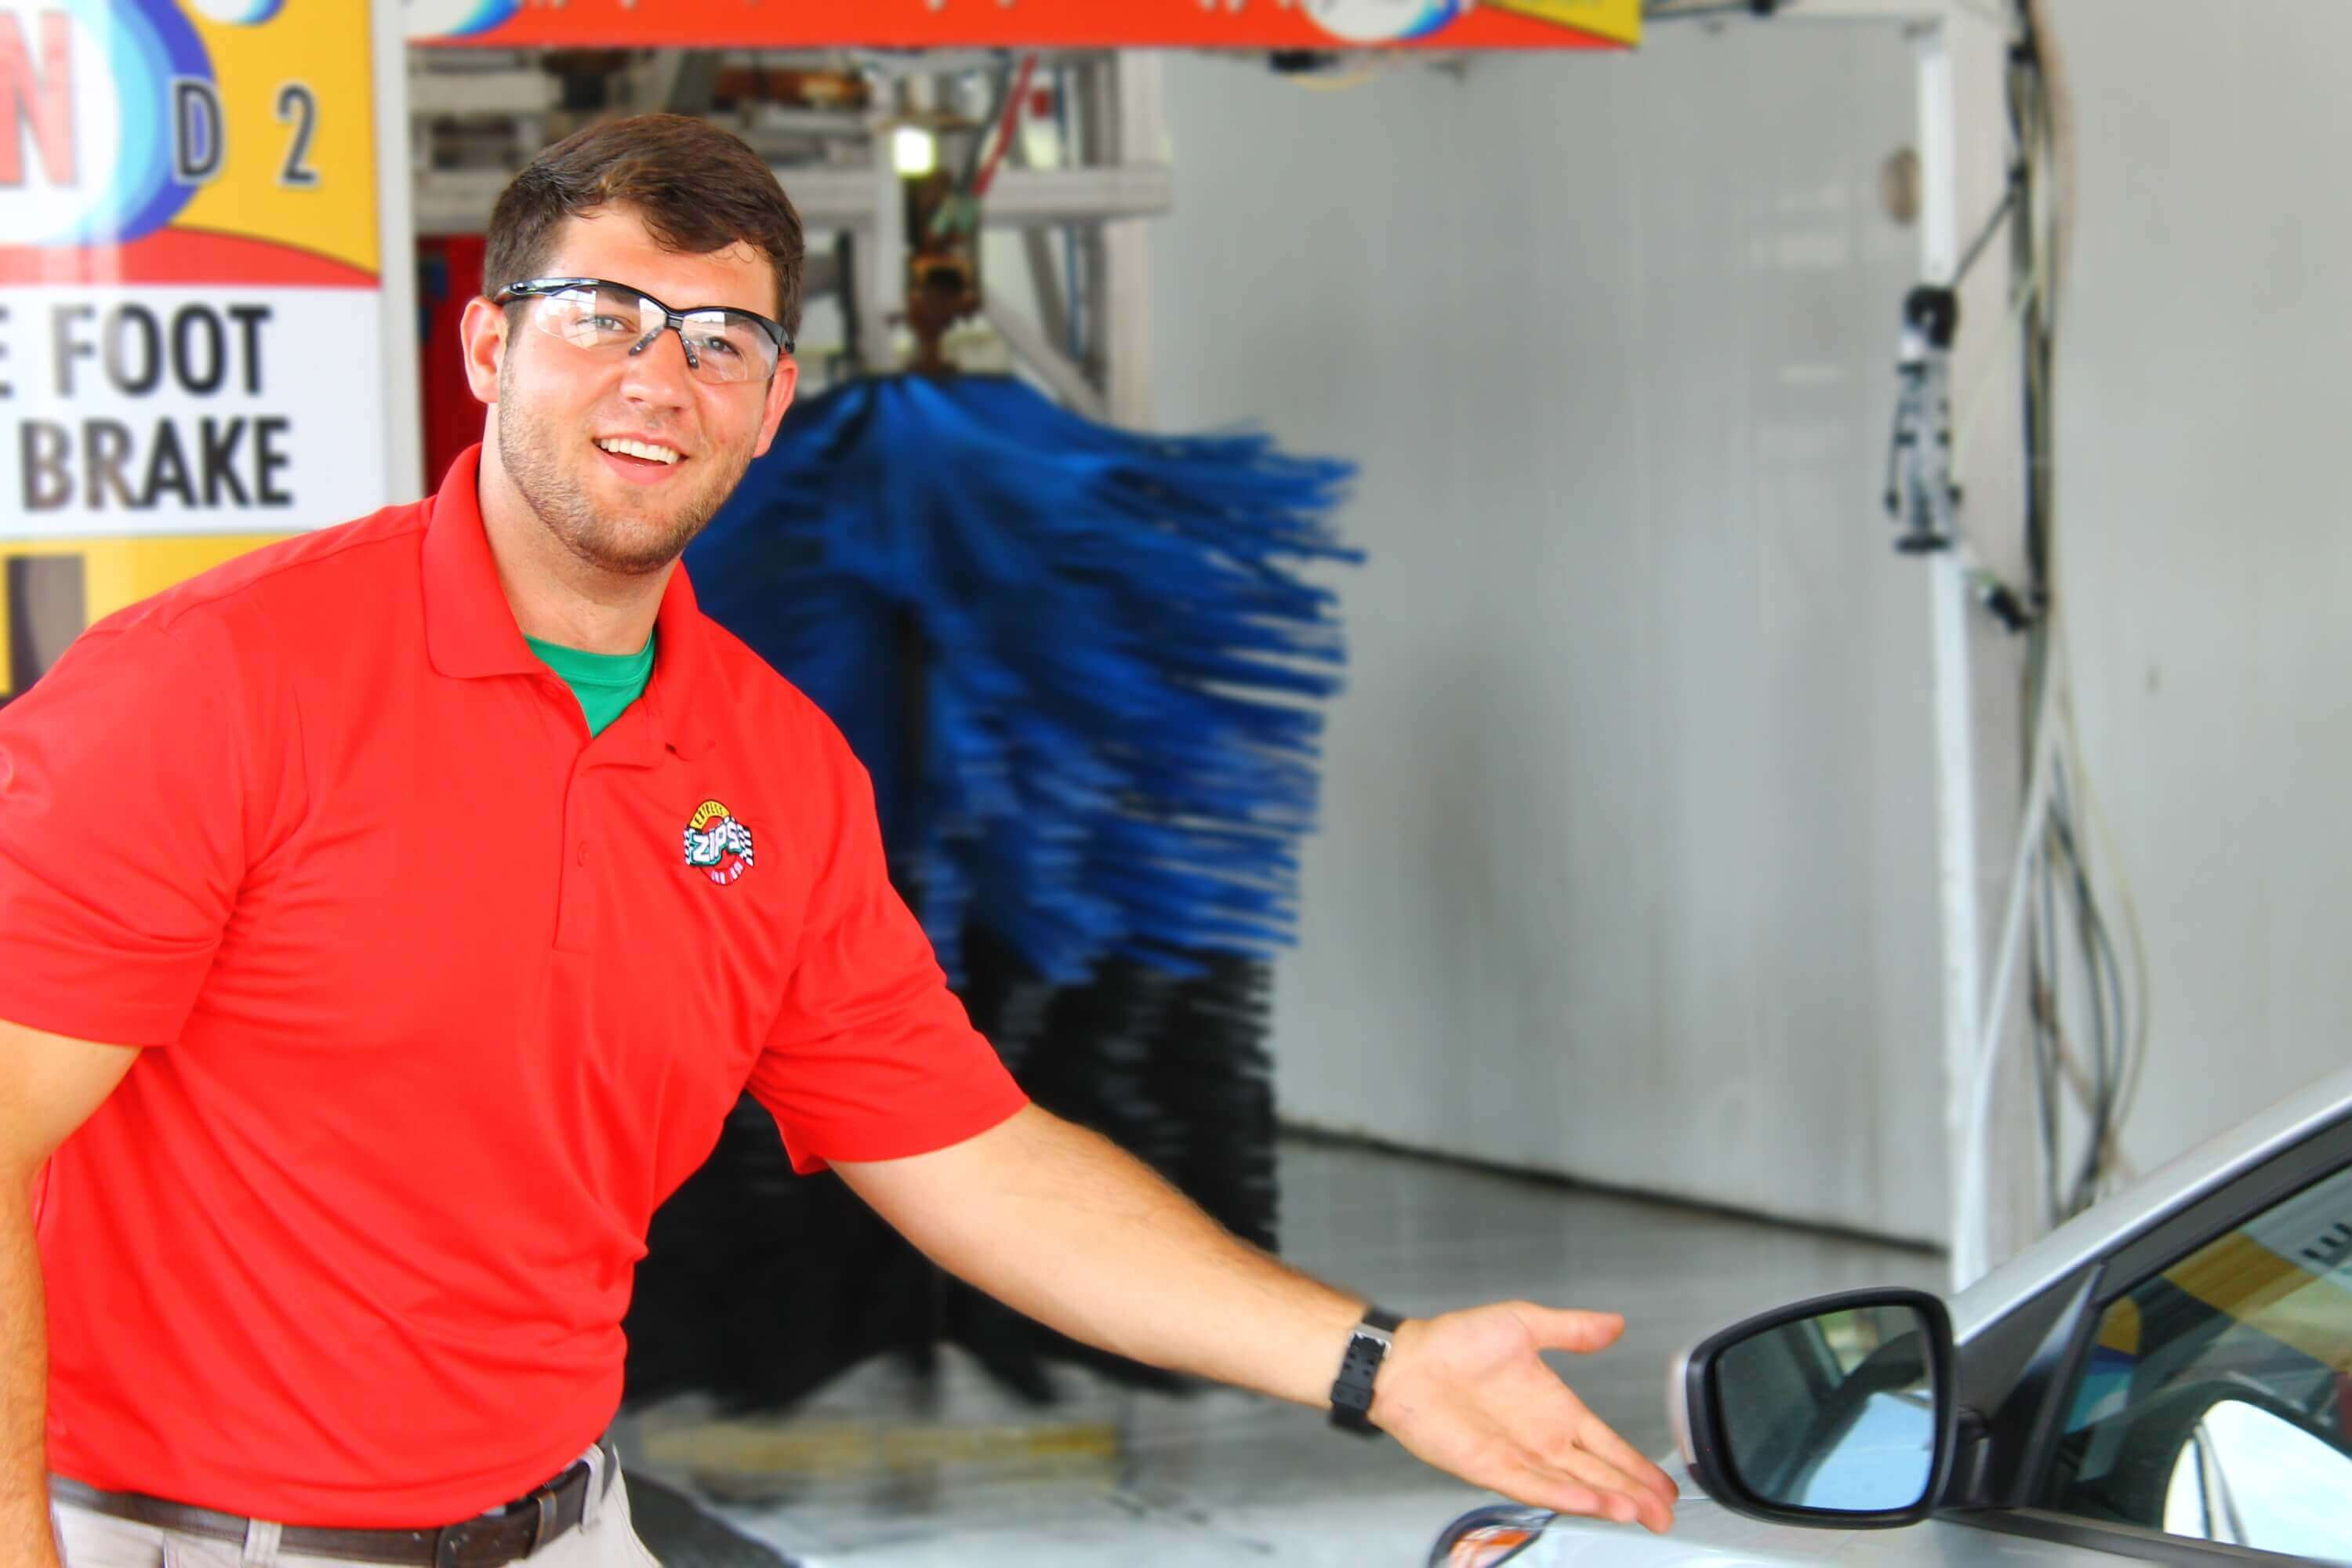 Zips Car Wash Builds Engaging Customer Relationships Thanx